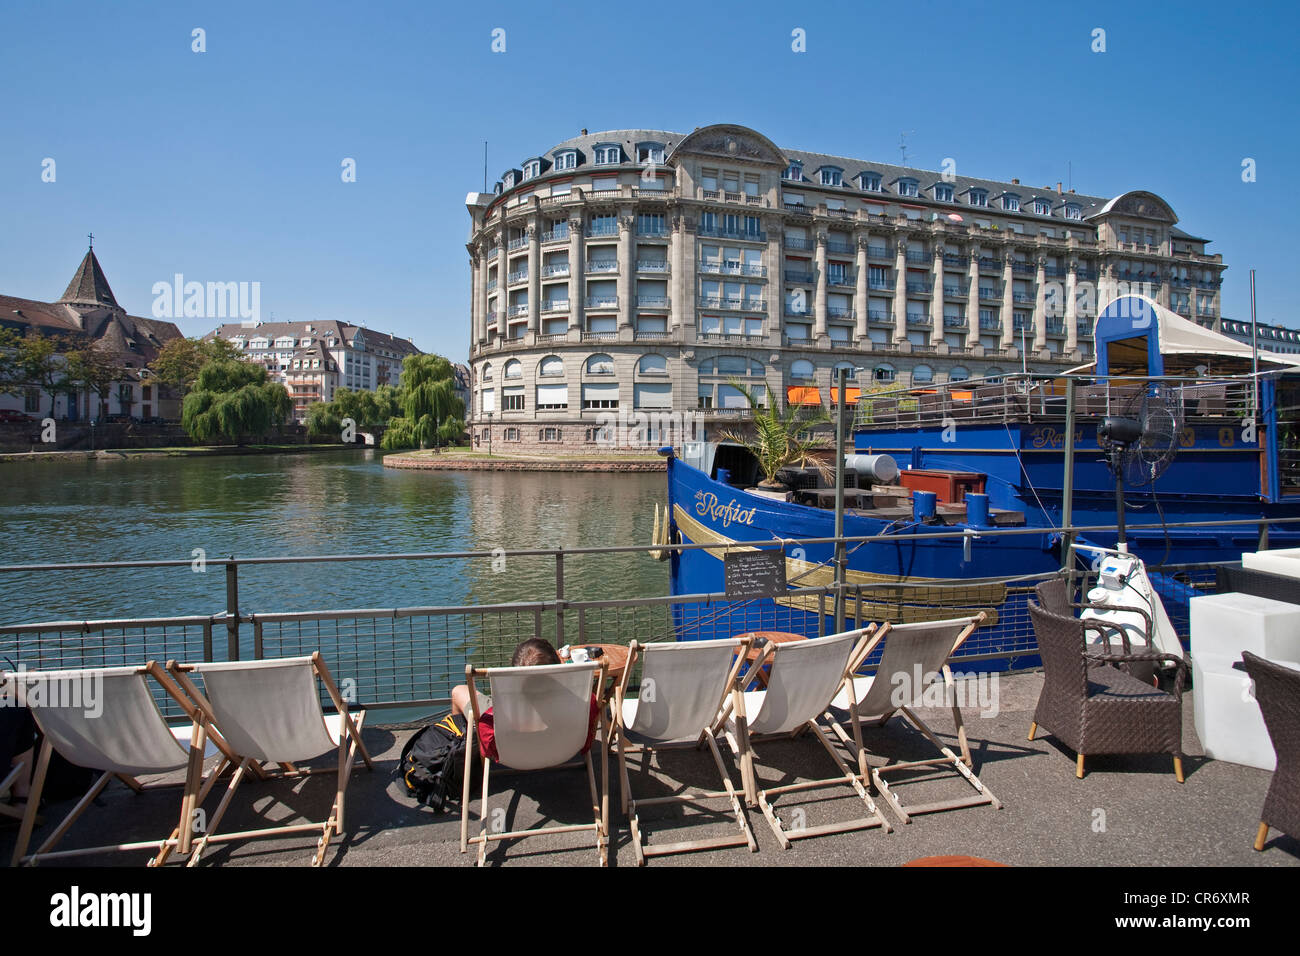 Strasbourg plage sans la plage or beach without beach on the banks of stock photo royalty free - La chaise longue strasbourg ...